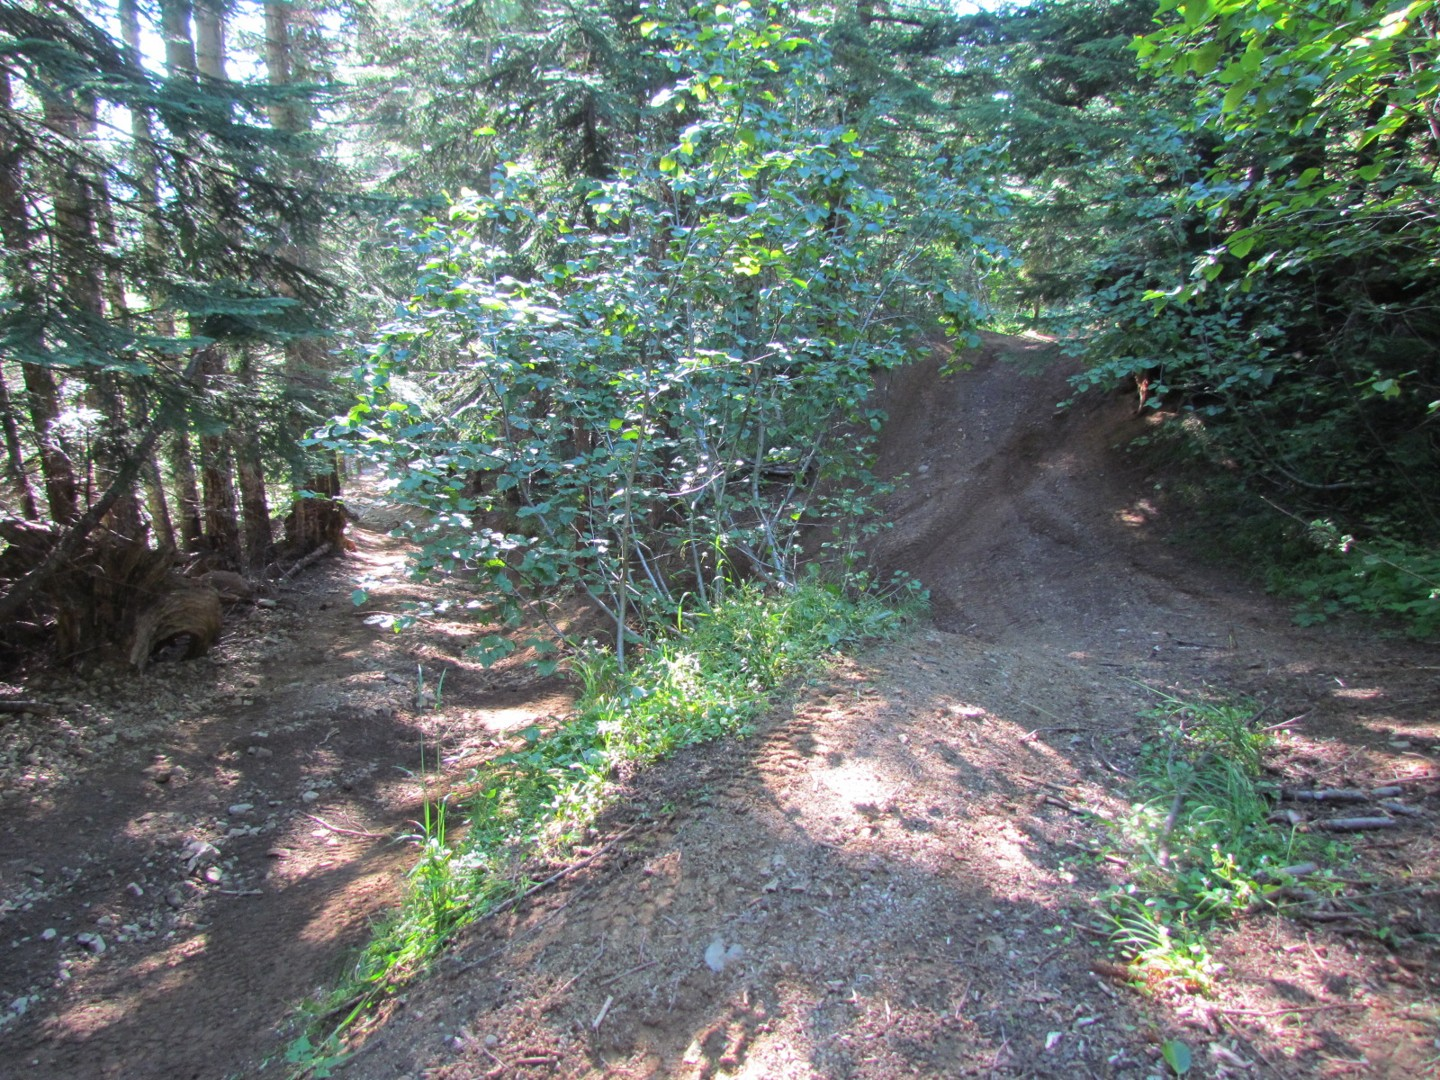 Evans Creek / Trail #519 - Waypoint 6: Trail Intersection / bypass (519-A)